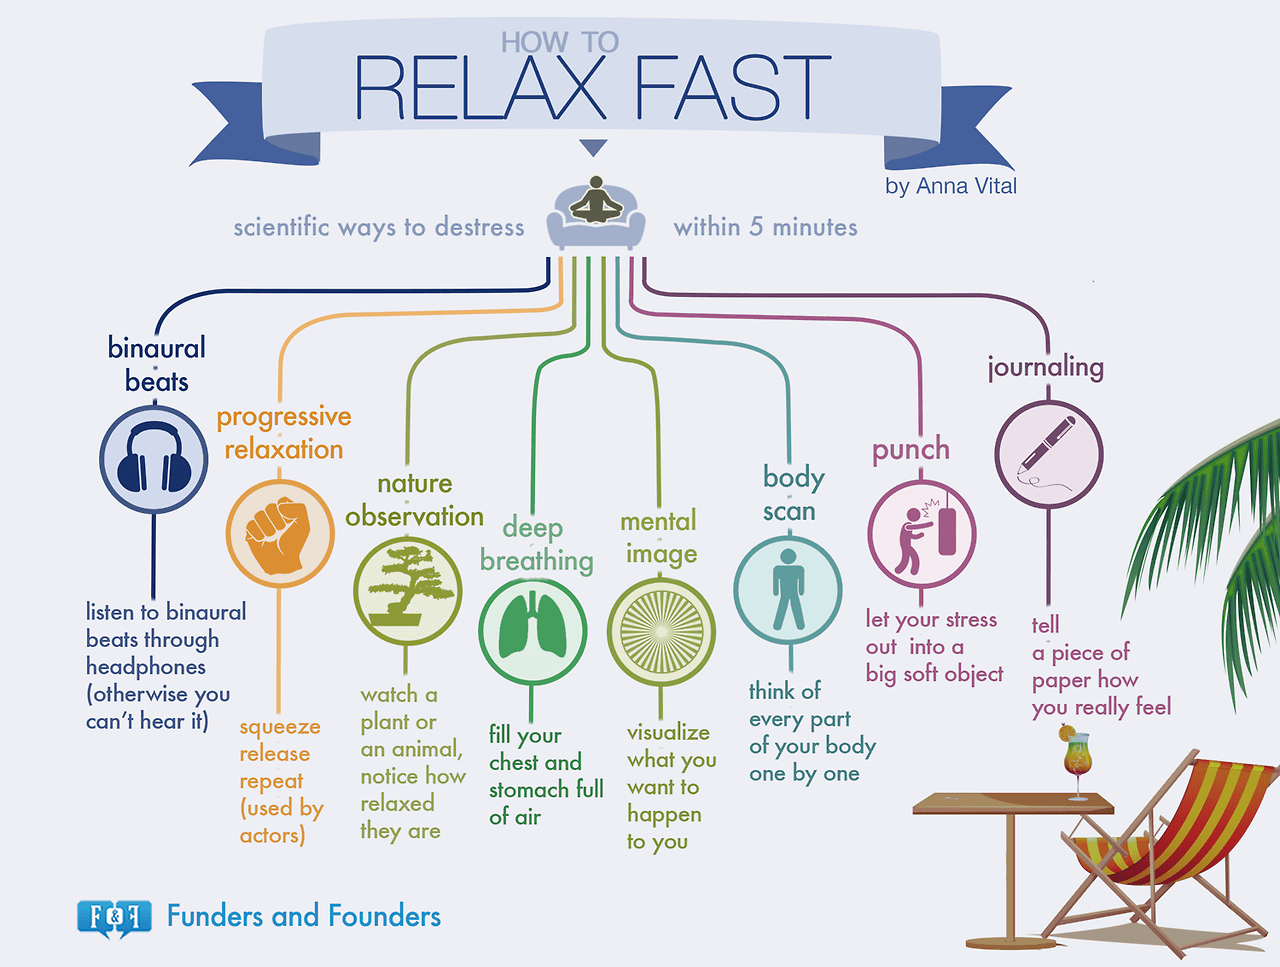 Check Out These Relaxation Techniques Relaxation Relieves Stress Which Makes You Sleep Better